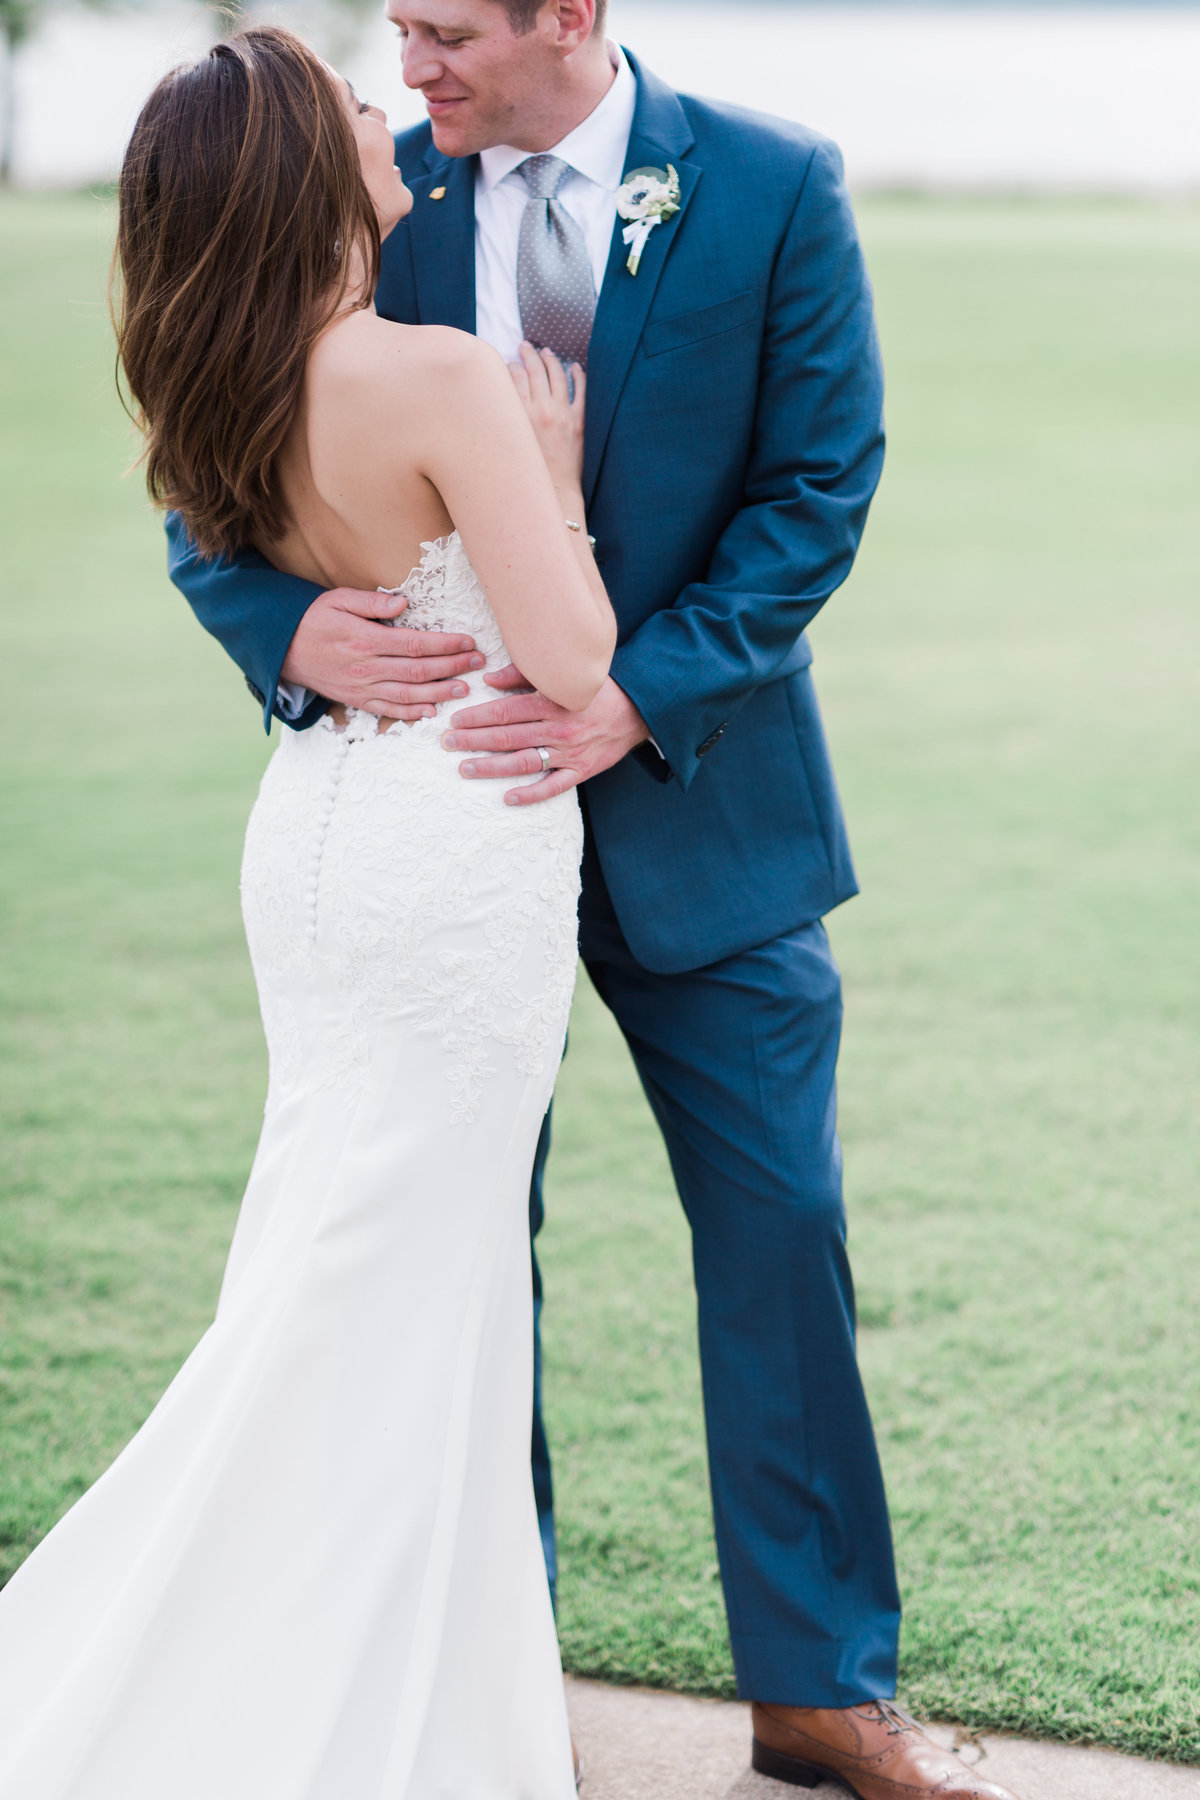 Elizabeth Friske Photography 2016 Wedding  Images-133